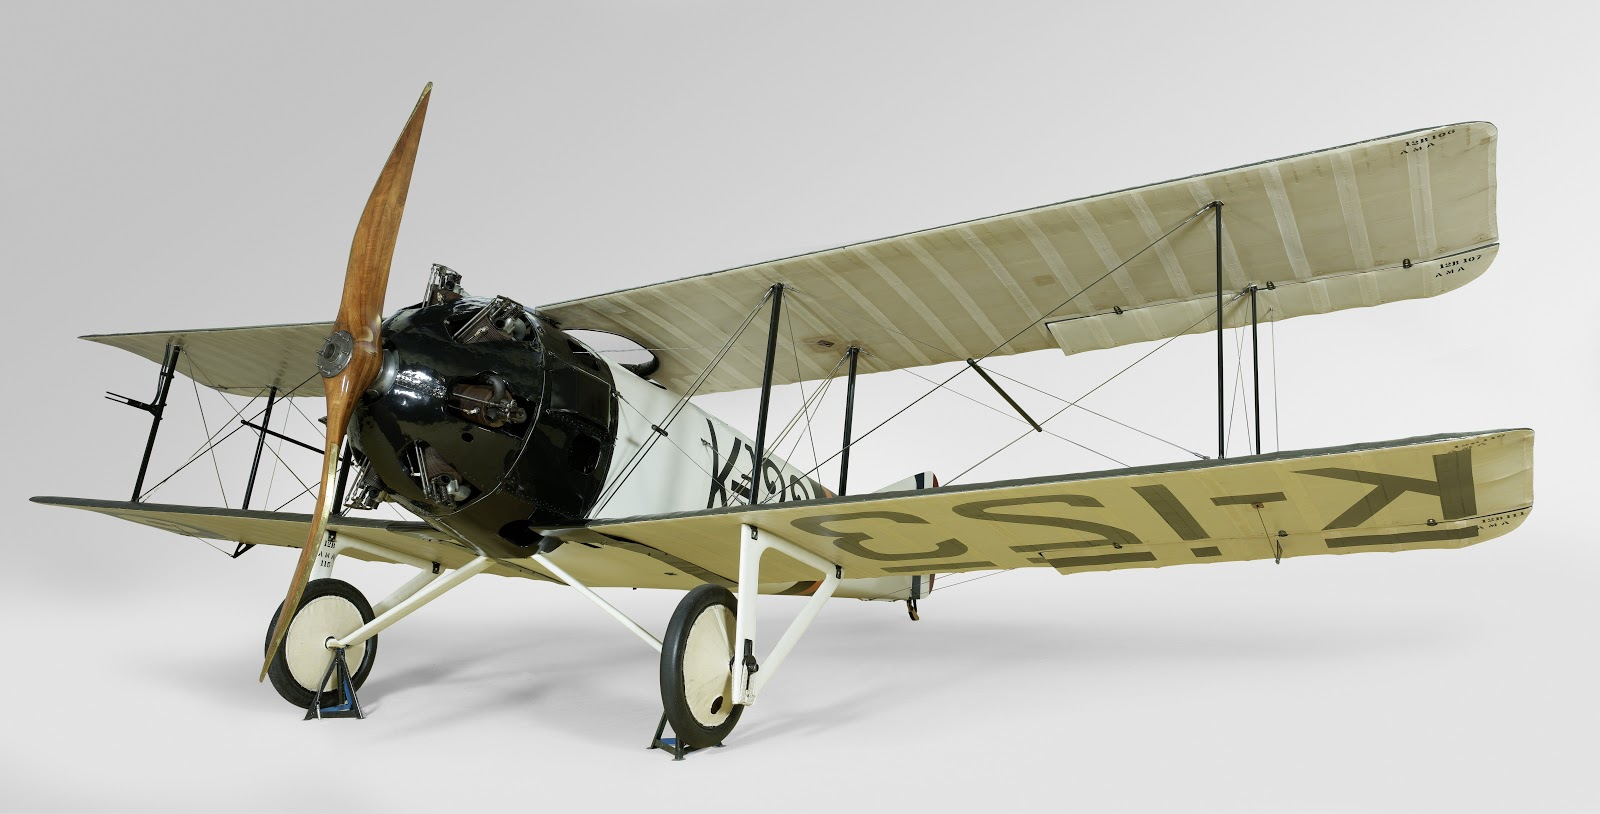 One of the best=kept secrets at the Rijksmuseum is its FK 23 Bantam World War One fighter jet.